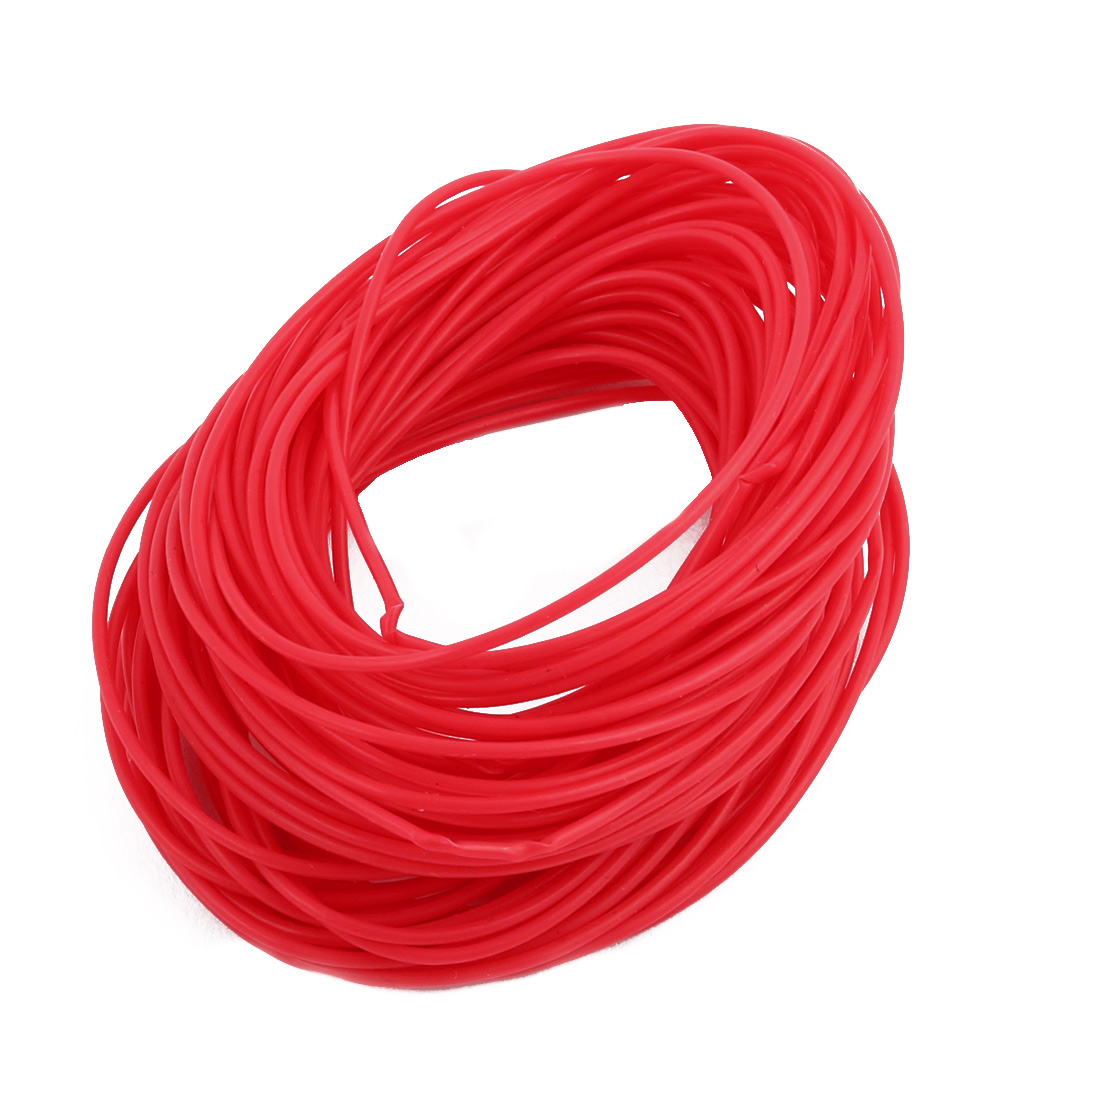 0.86mmx1.16mm PTFE Resistant High Temperature Red Tubing 10 Meters 32.8Ft